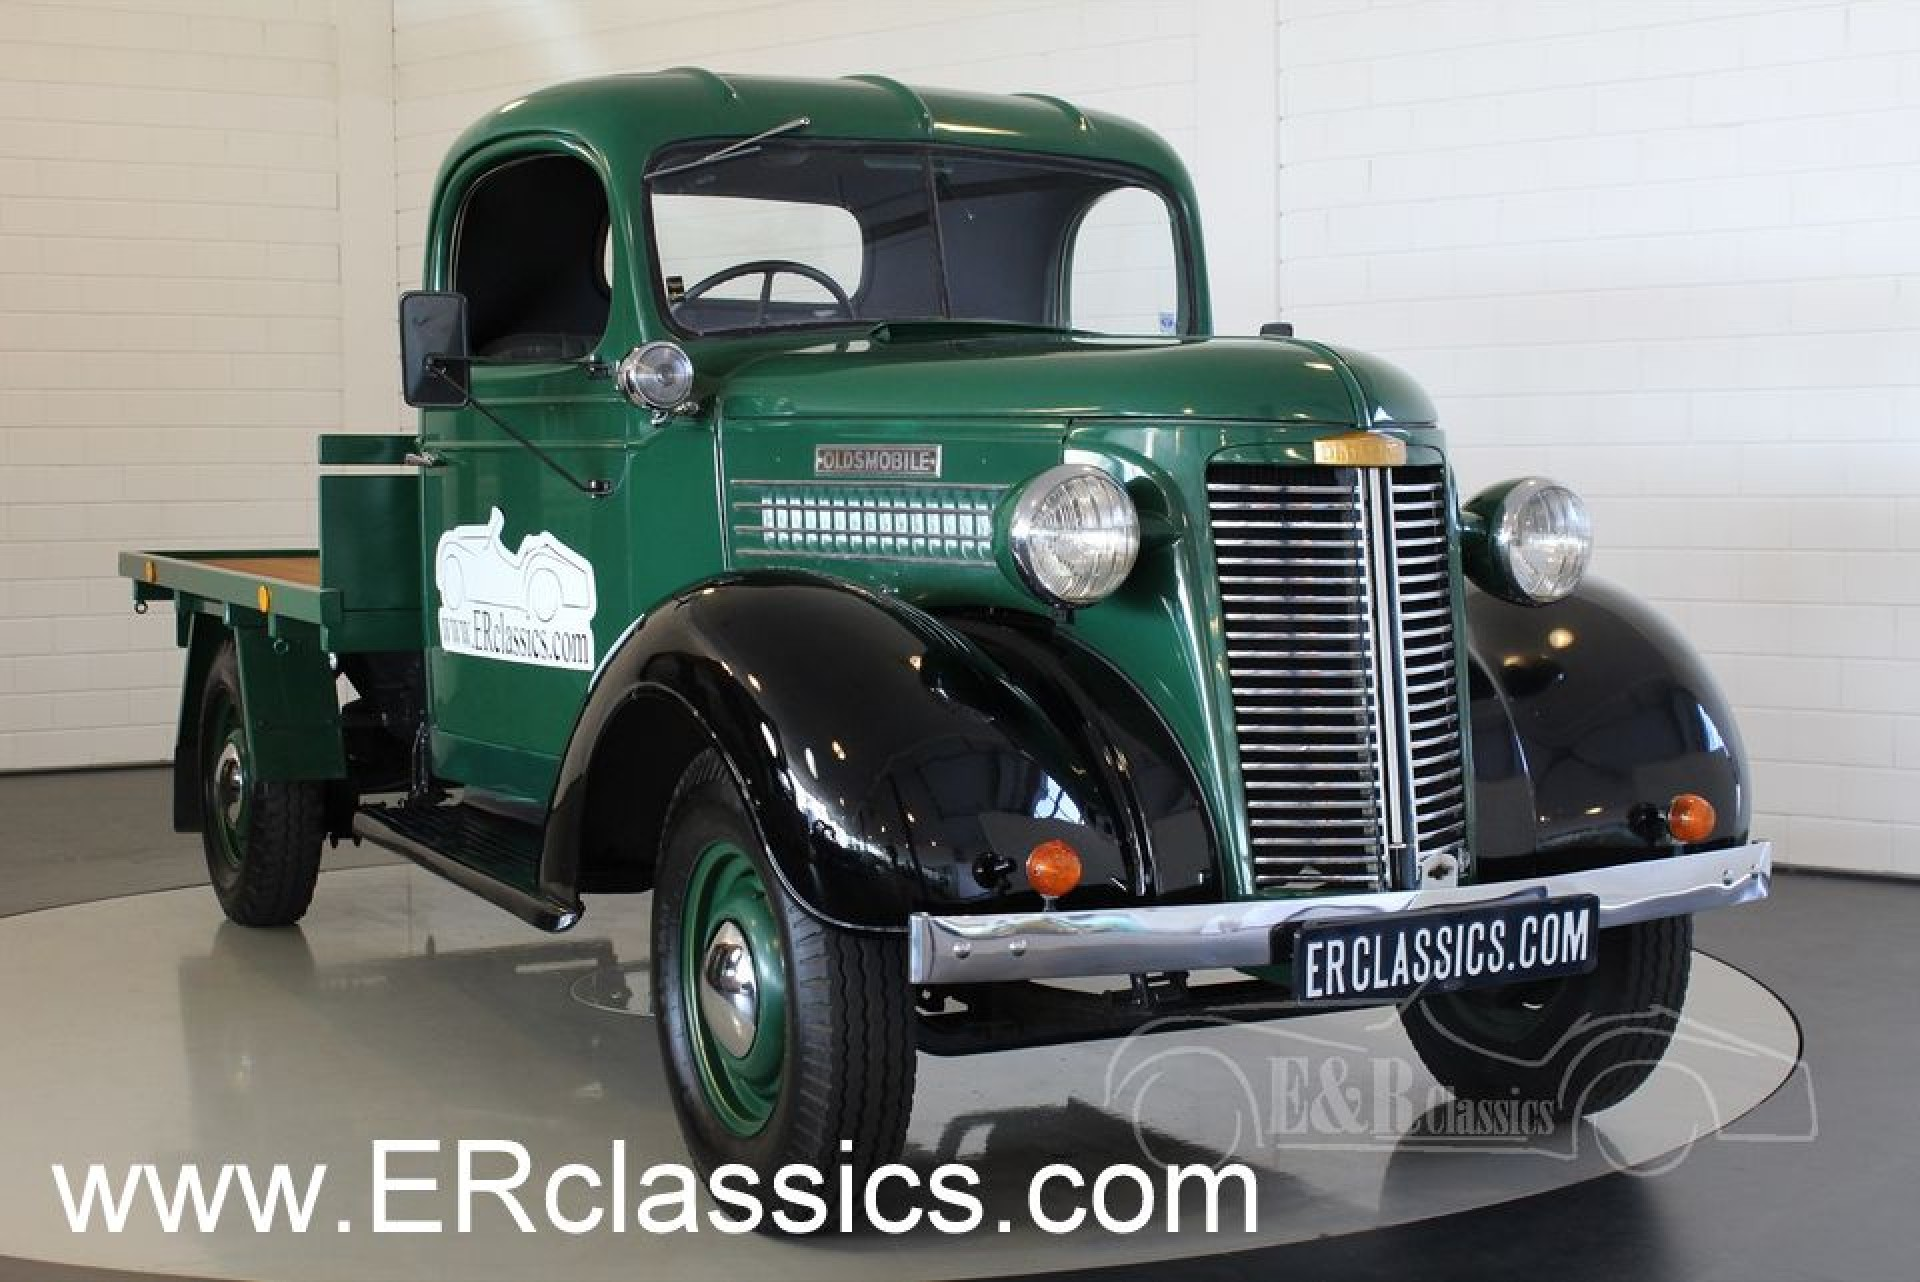 Oldsmobile Pick-Up 1938 for sale at ERclassics